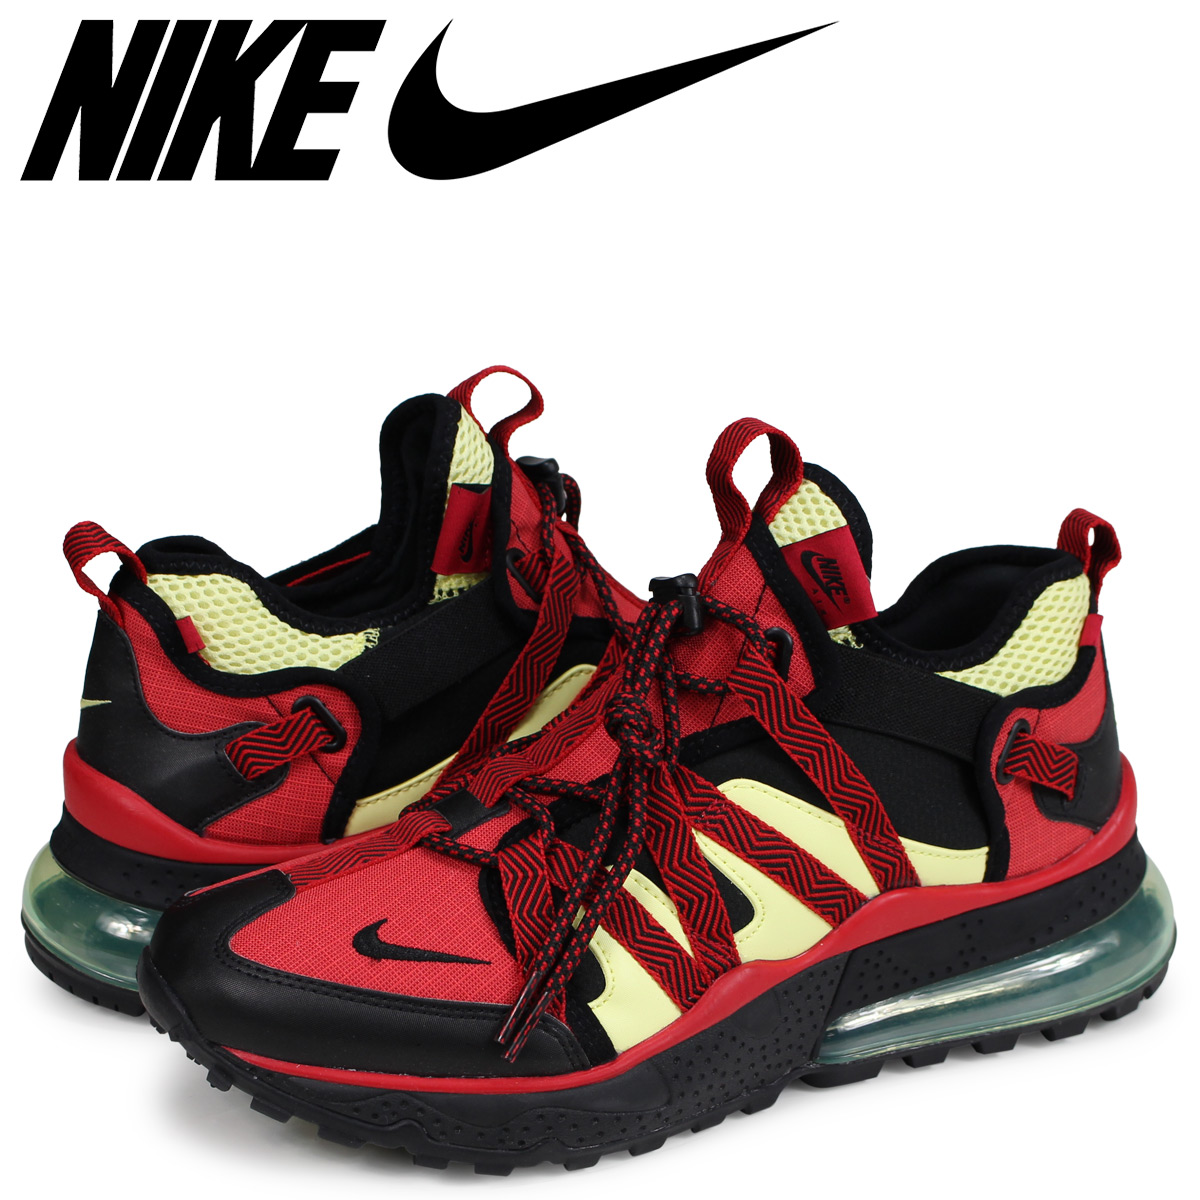 new product 11177 be52b NIKE AIR MAX 270 BOWFIN Kie Ney AMAX 270 sneakers men red AJ7200-003